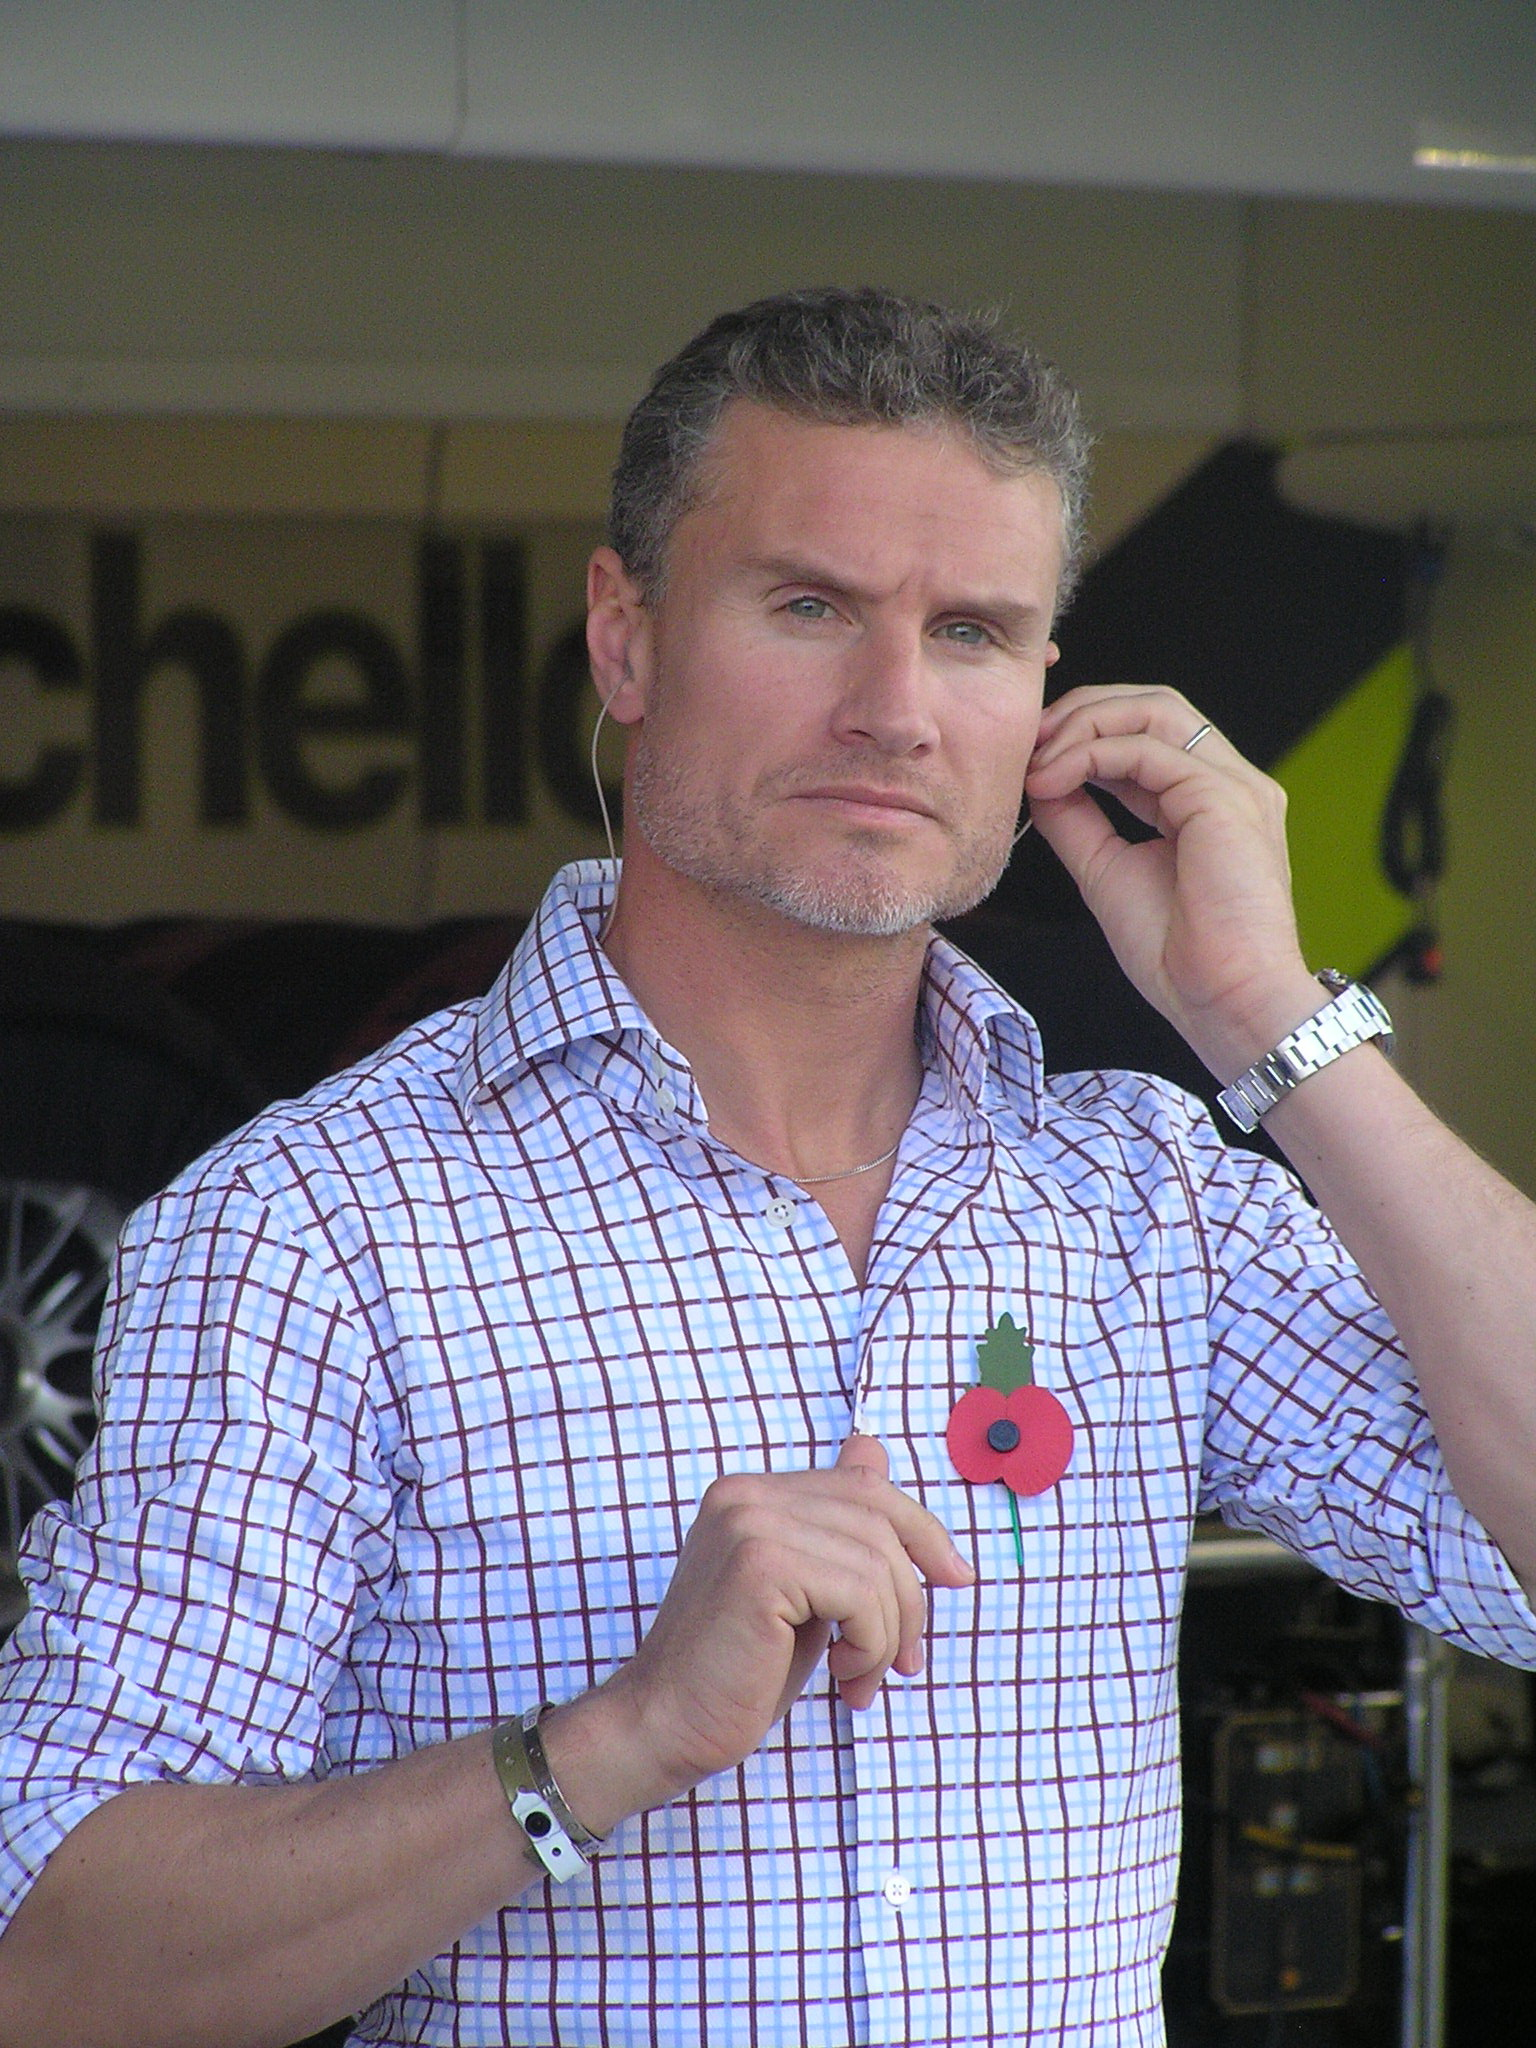 The 47-year old son of father (?) and mother(?) David Coulthard in 2018 photo. David Coulthard earned a  million dollar salary - leaving the net worth at 12.4 million in 2018